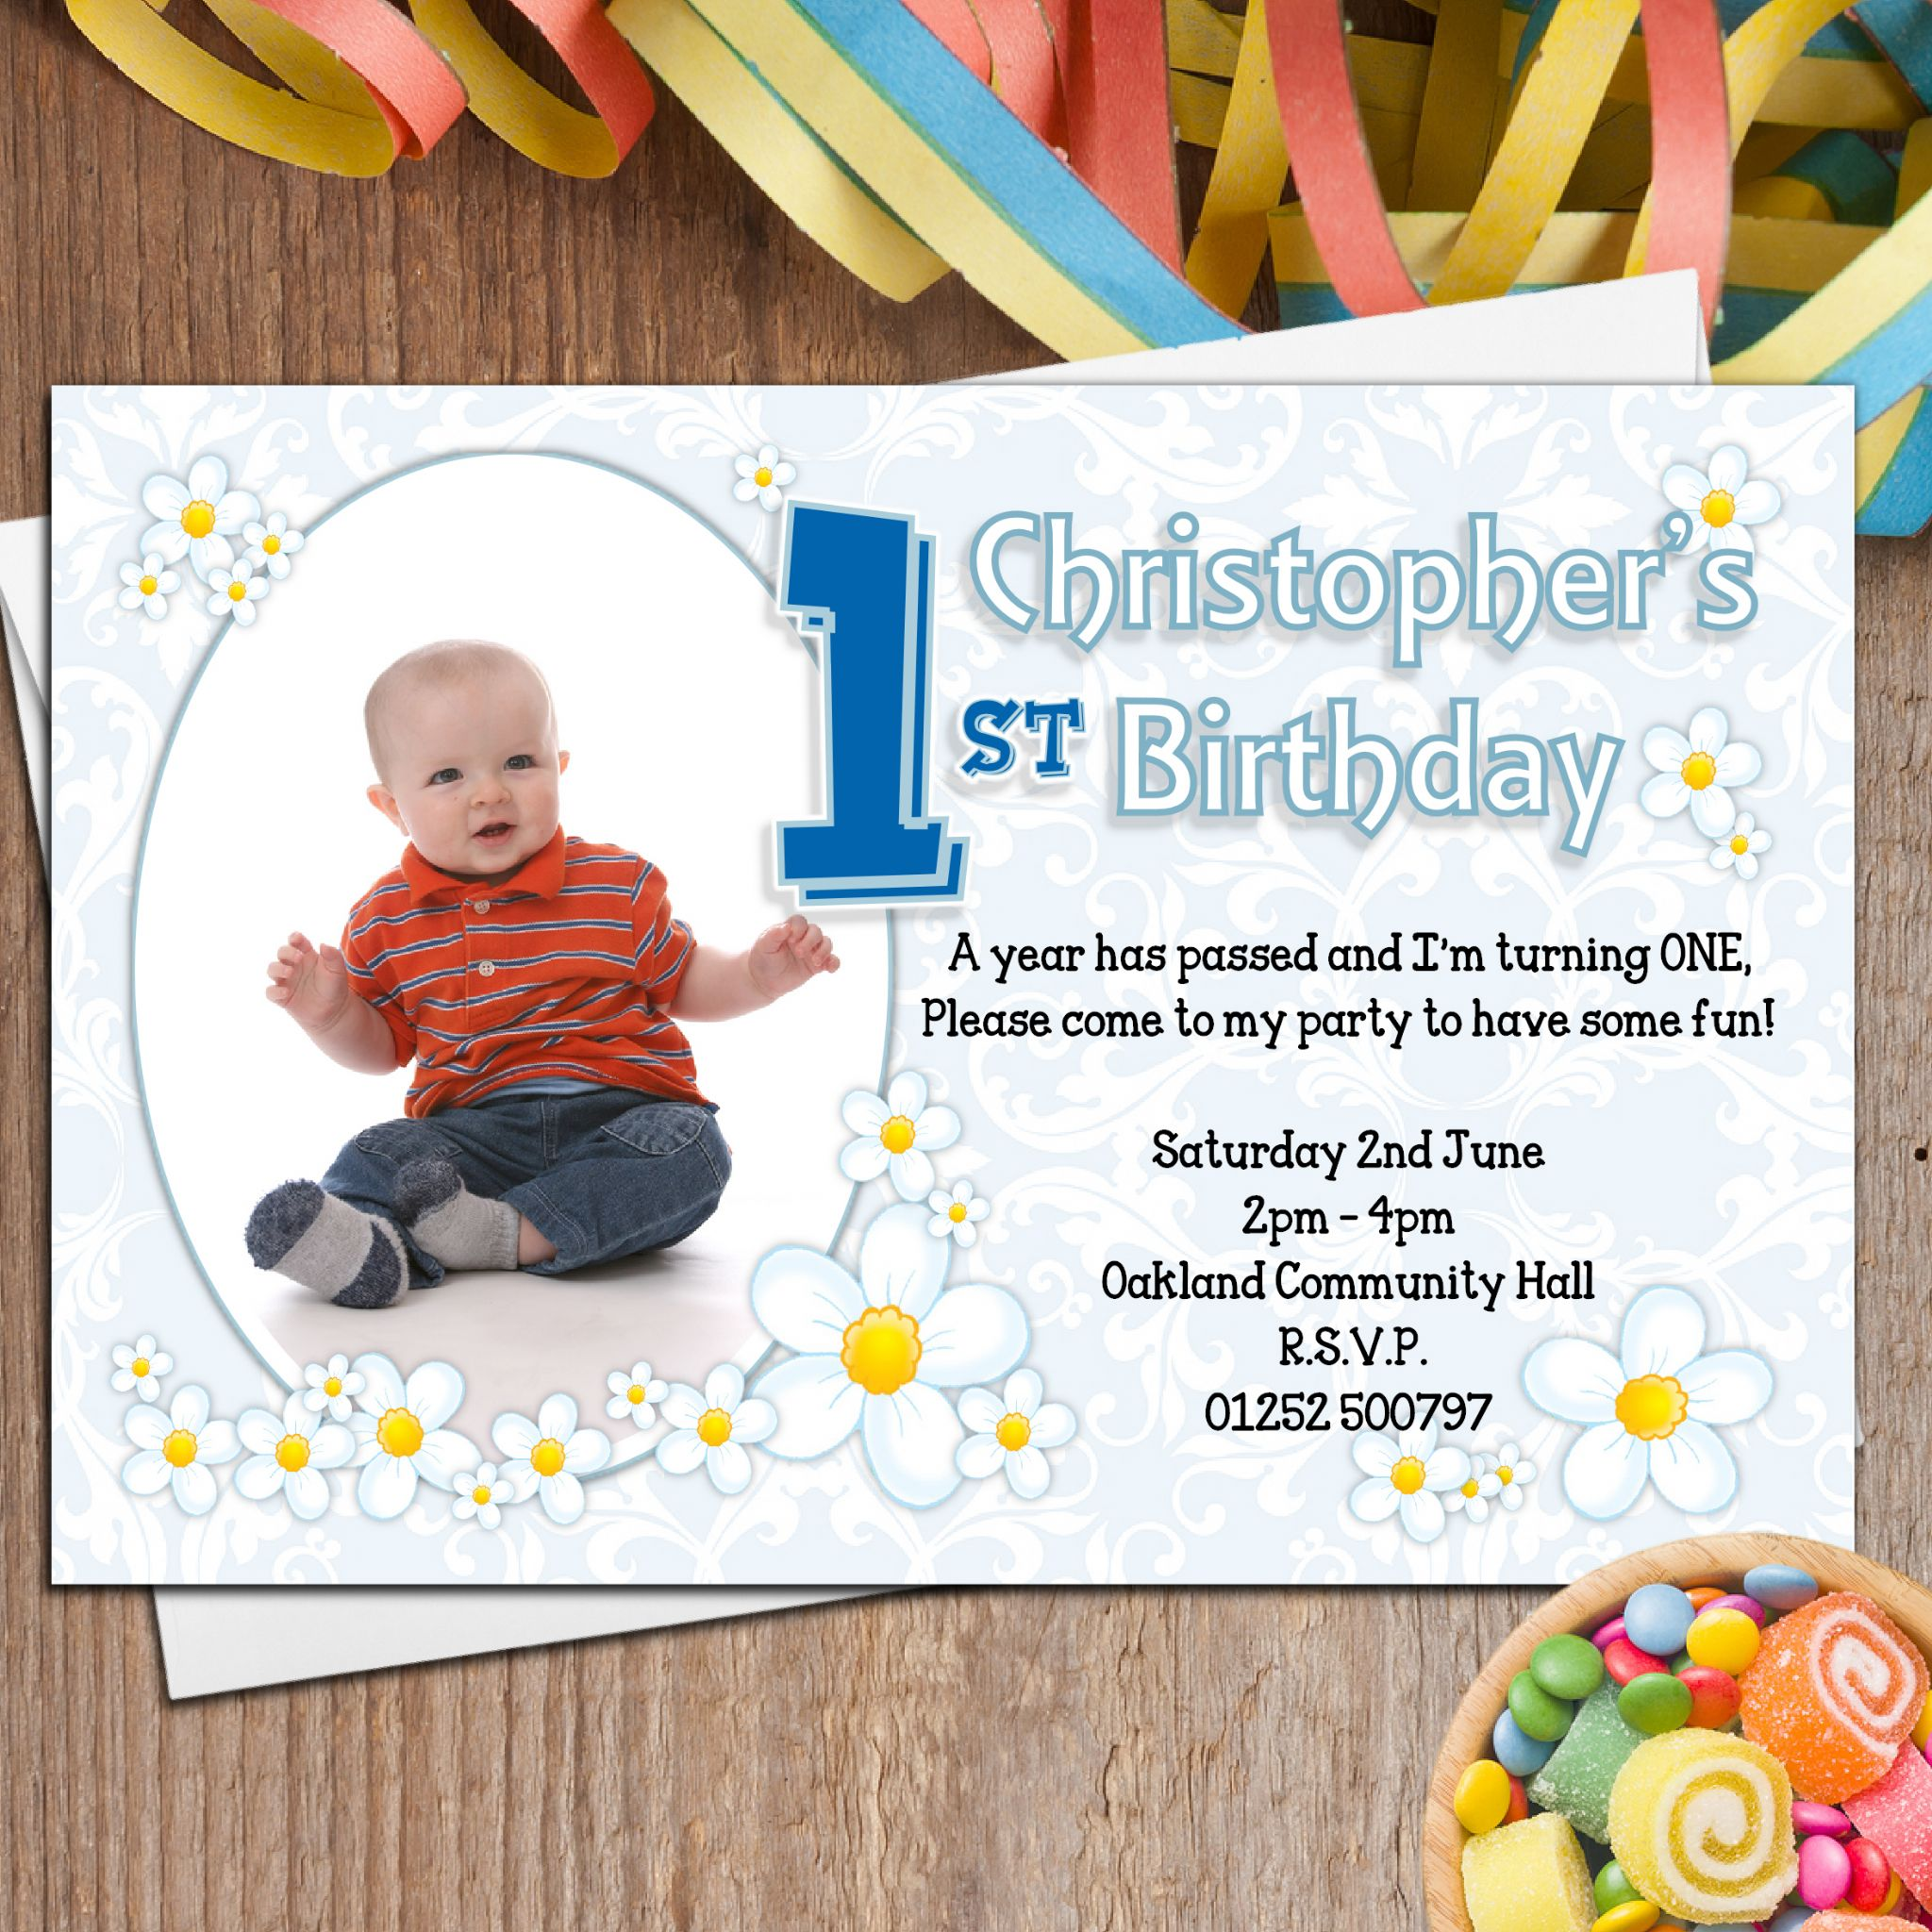 Dress womens clothing: Personalised 1st birthday invitations